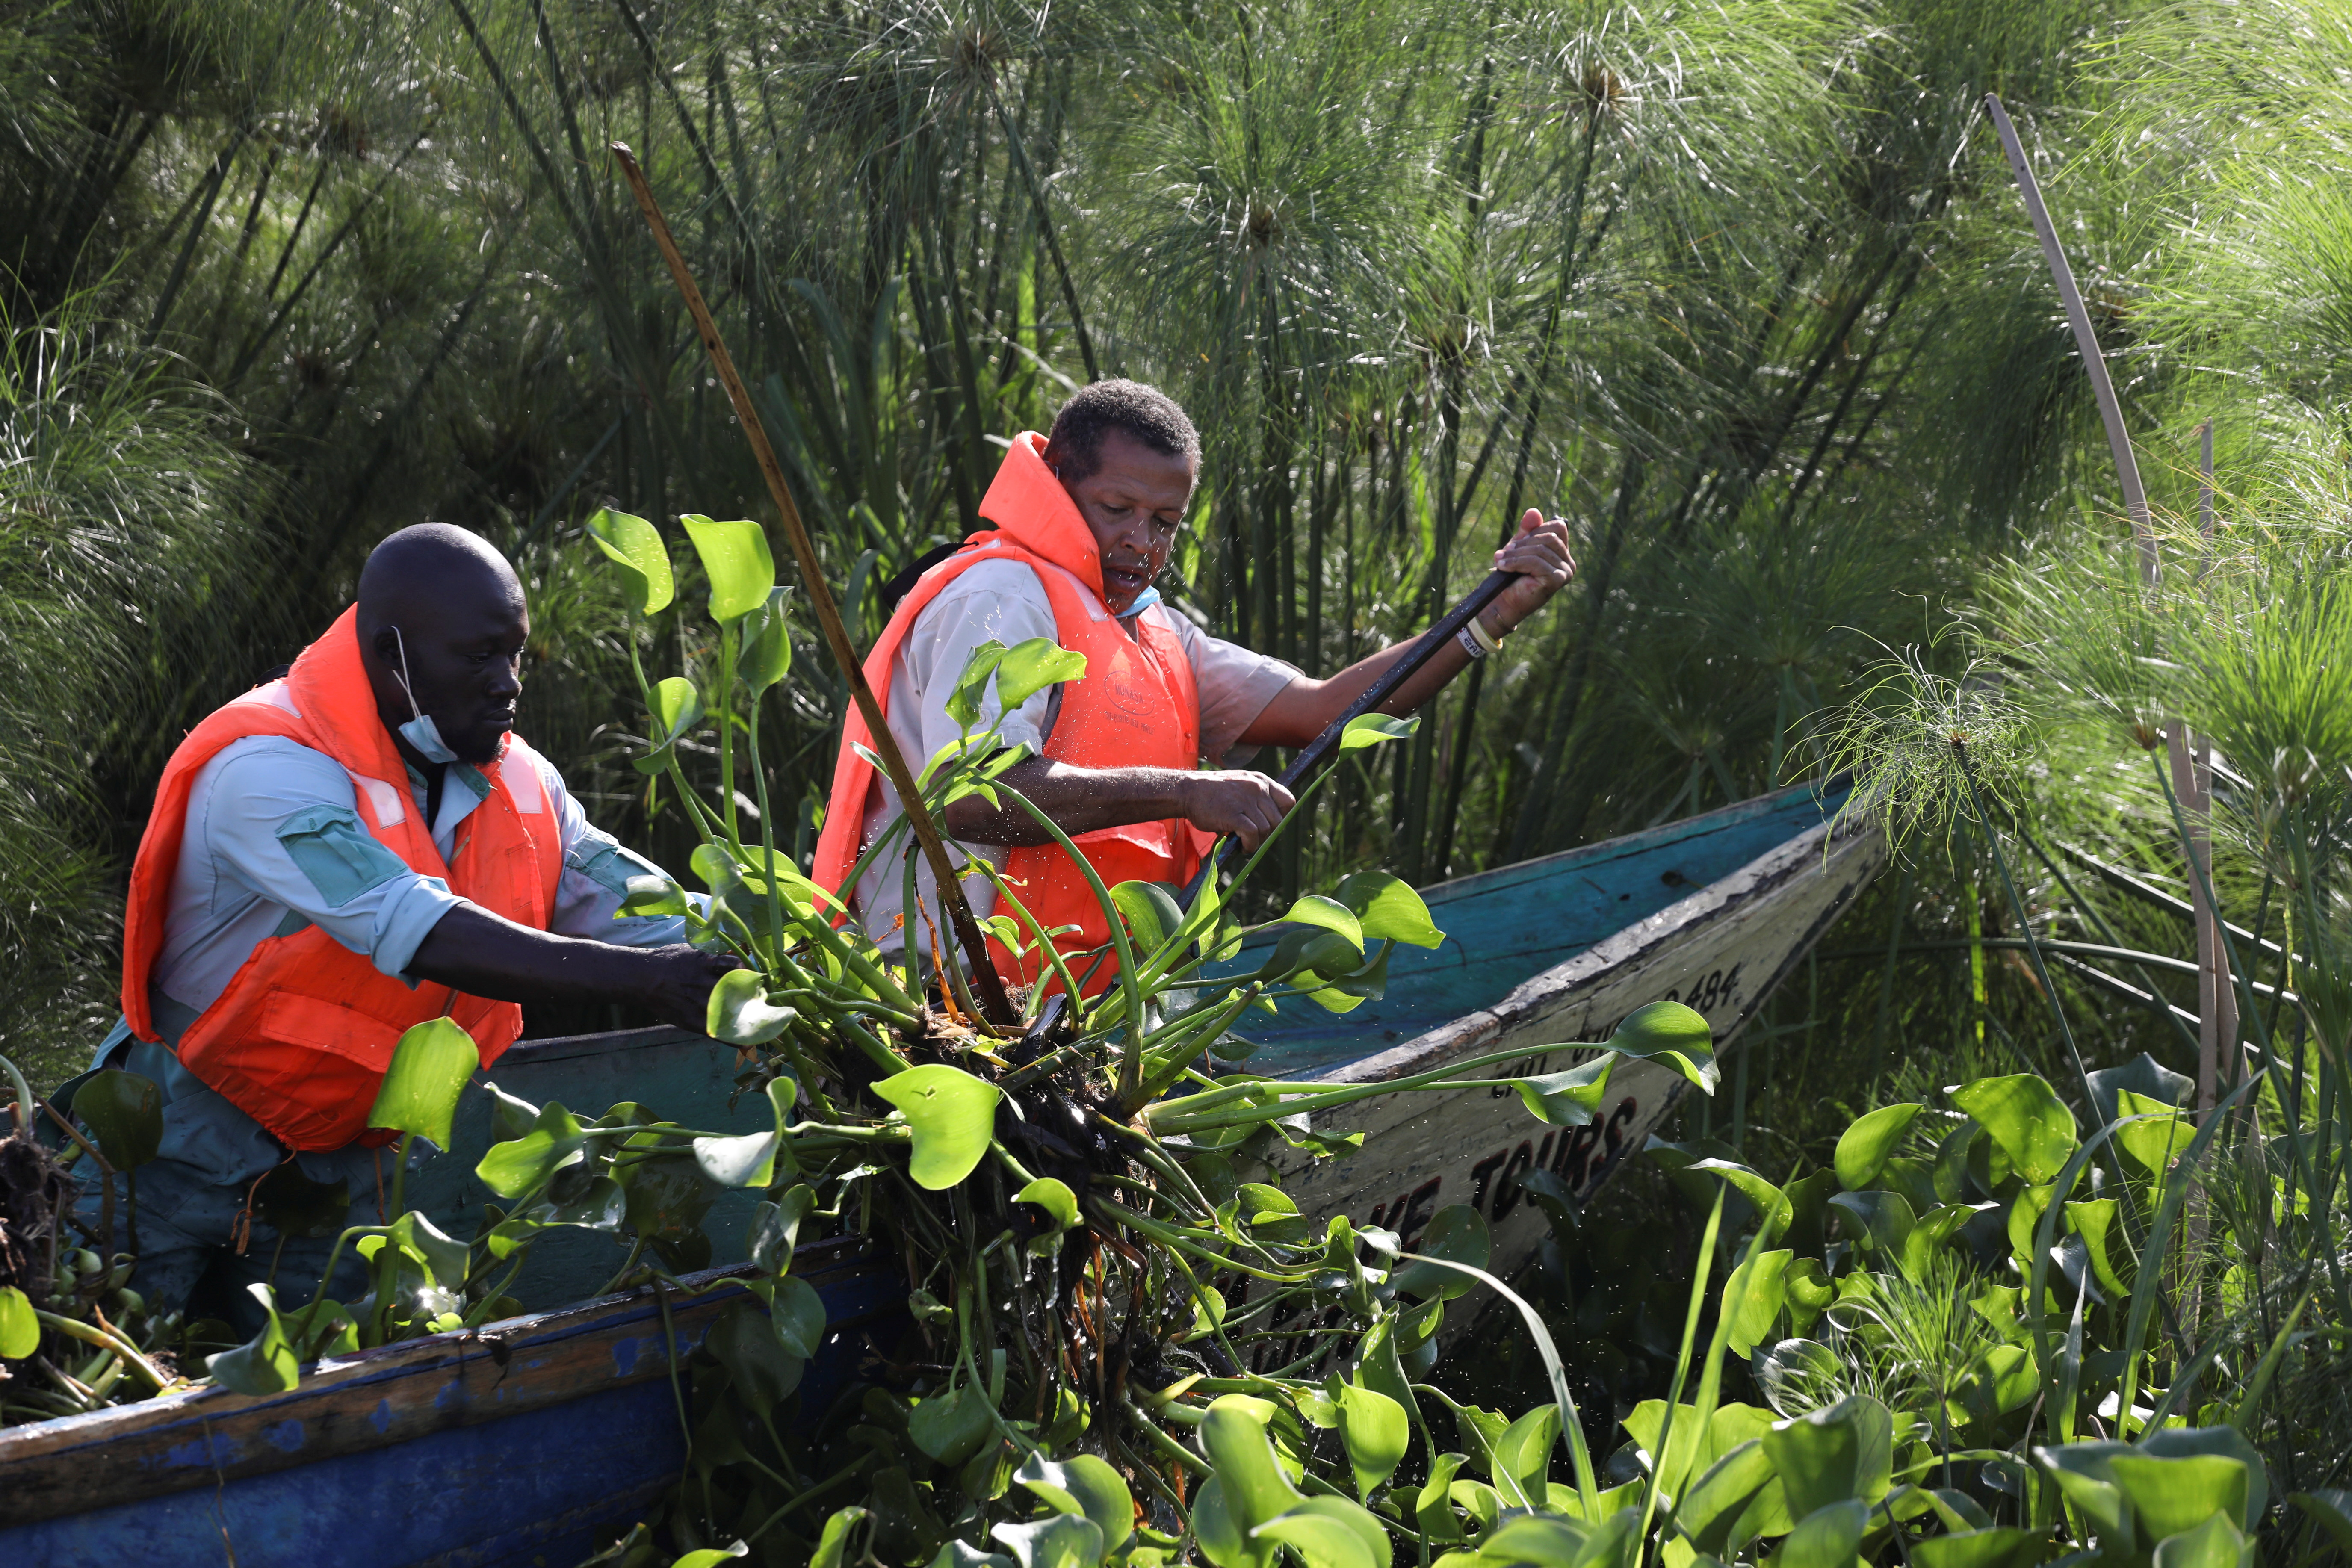 Entrepreneur Dominic Kahumbu and his worker use a boat to harvest water hyacinth to be converted into biogas, on Lake Victoria, near the town of Kisumu, Kenya June 9, 2021. REUTERS/Baz Ratner